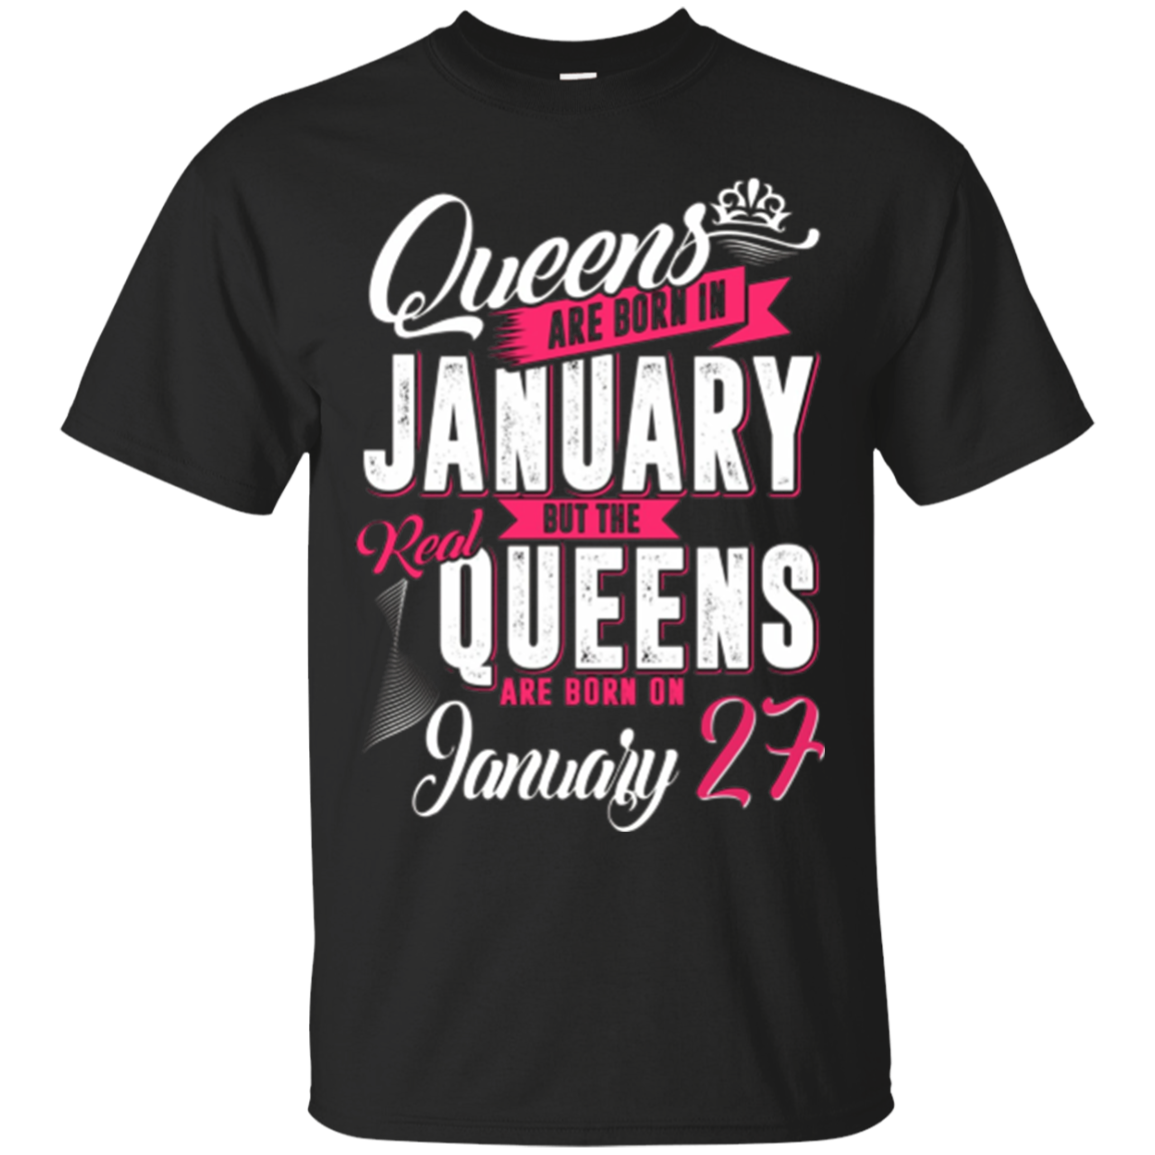 Real Queens Are Born On January 27 T-Shirt Birthday Shirt